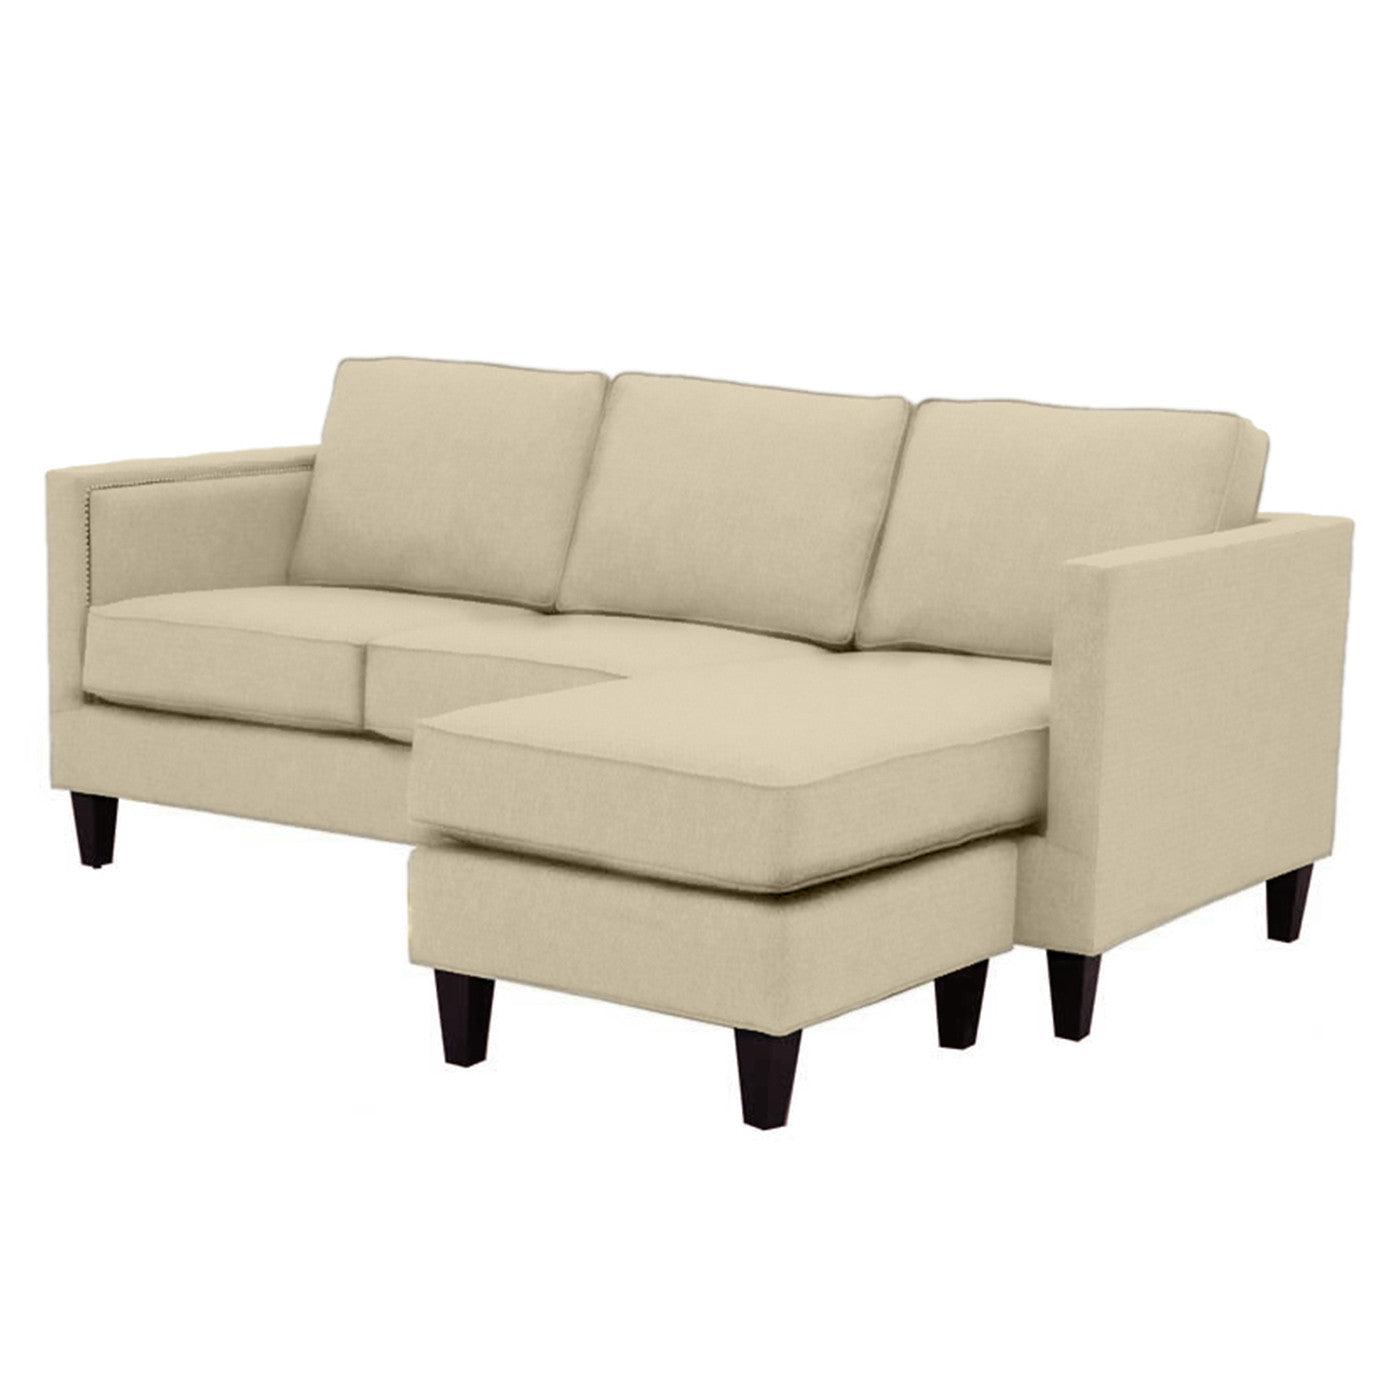 product sofas s sofa living ashby to chaise item image furniture change click leon room grey